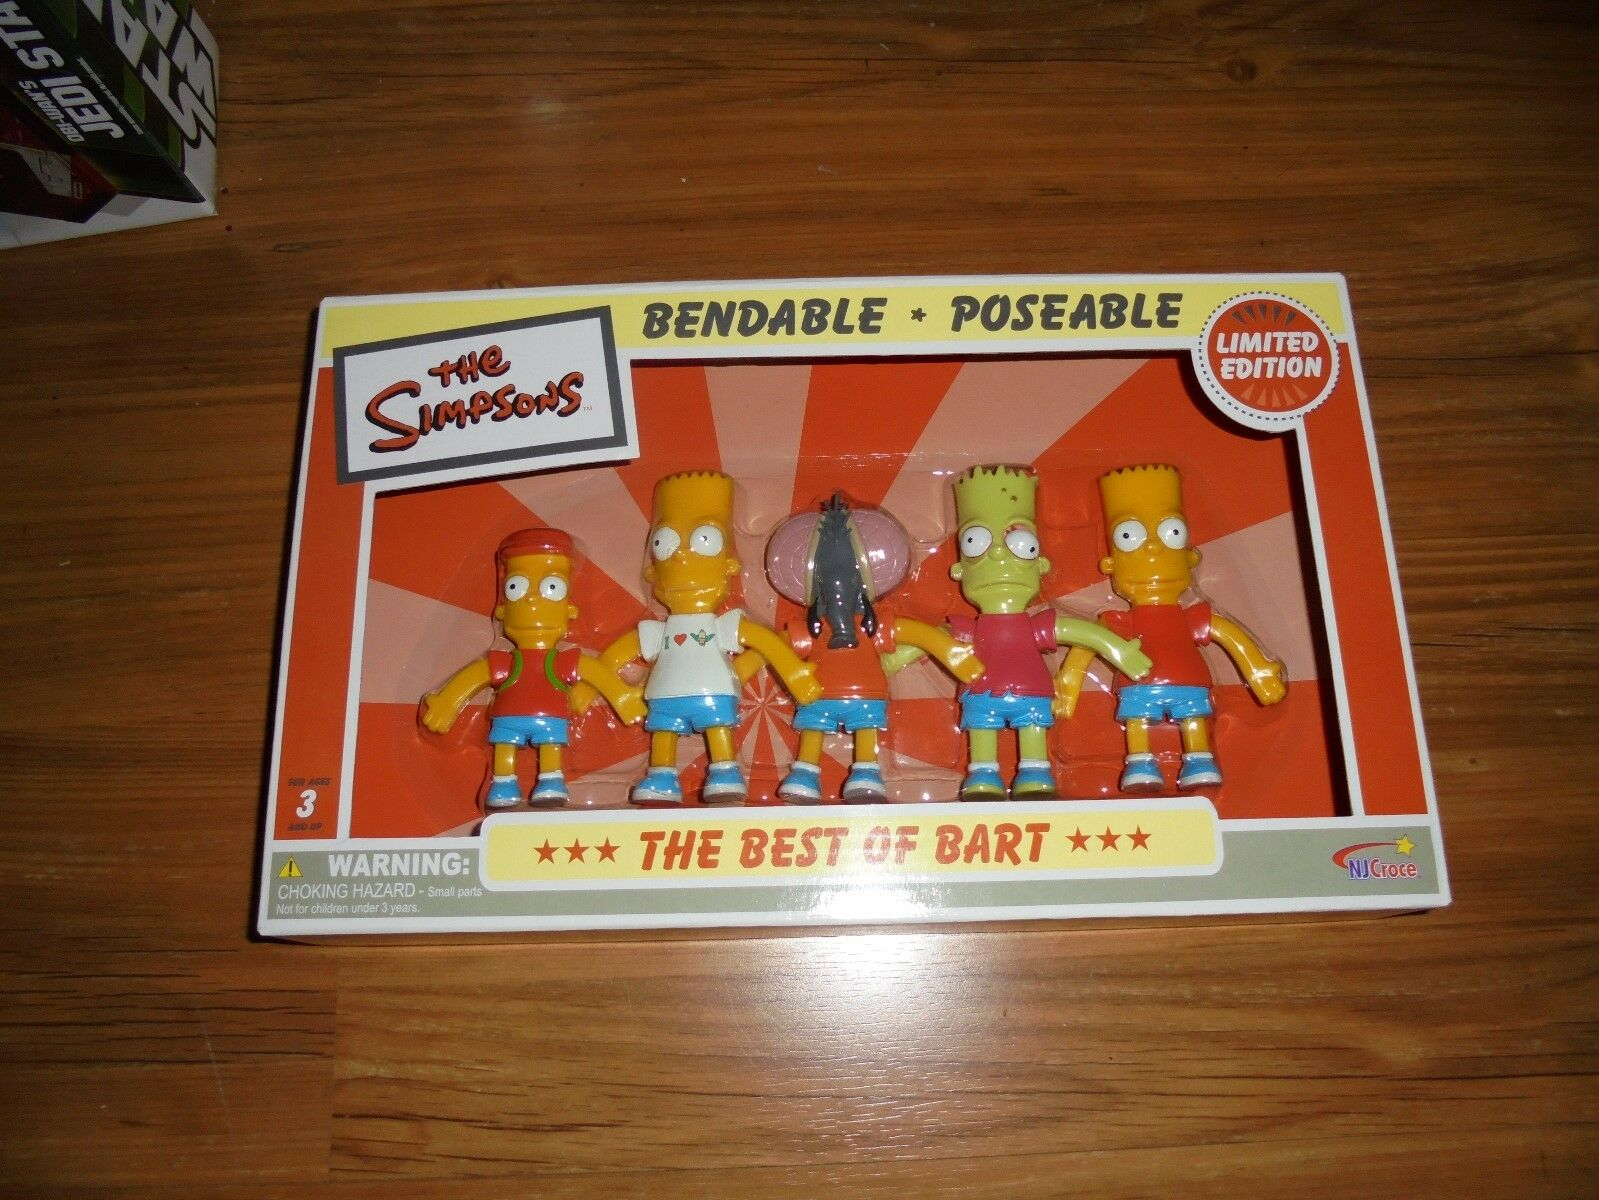 Simpsons  The Best Of BART  Limited Edition Bendable & Poseable 5pc Set 2006